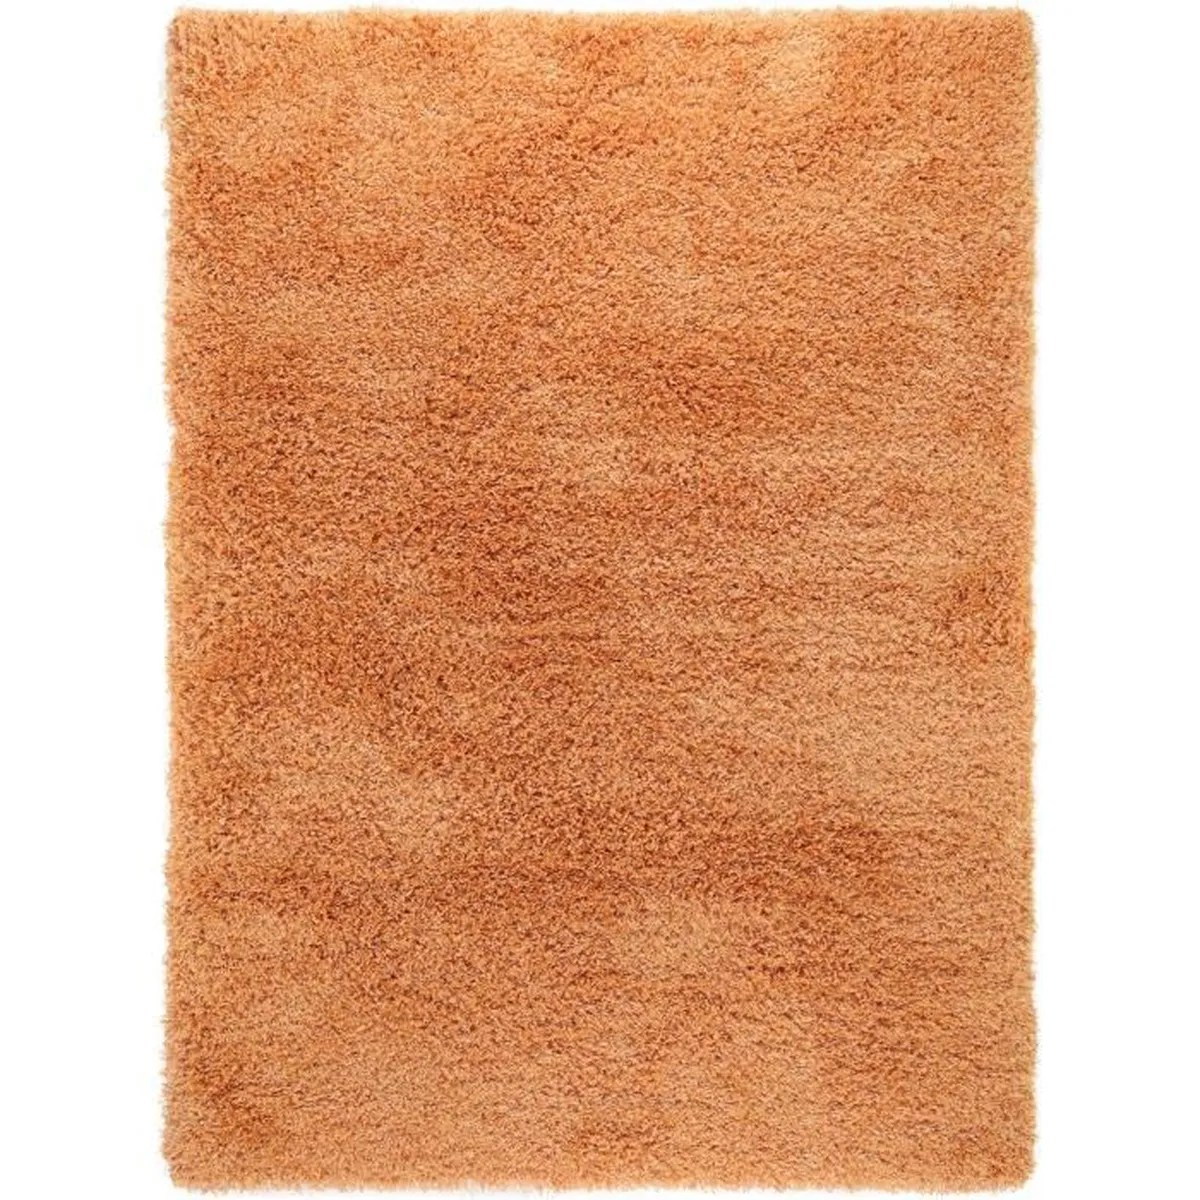 Tapis Shaggy Orange Tapis Shaggy à Poils Longs Sophie Orange 300x400 Cm Tapis Doux